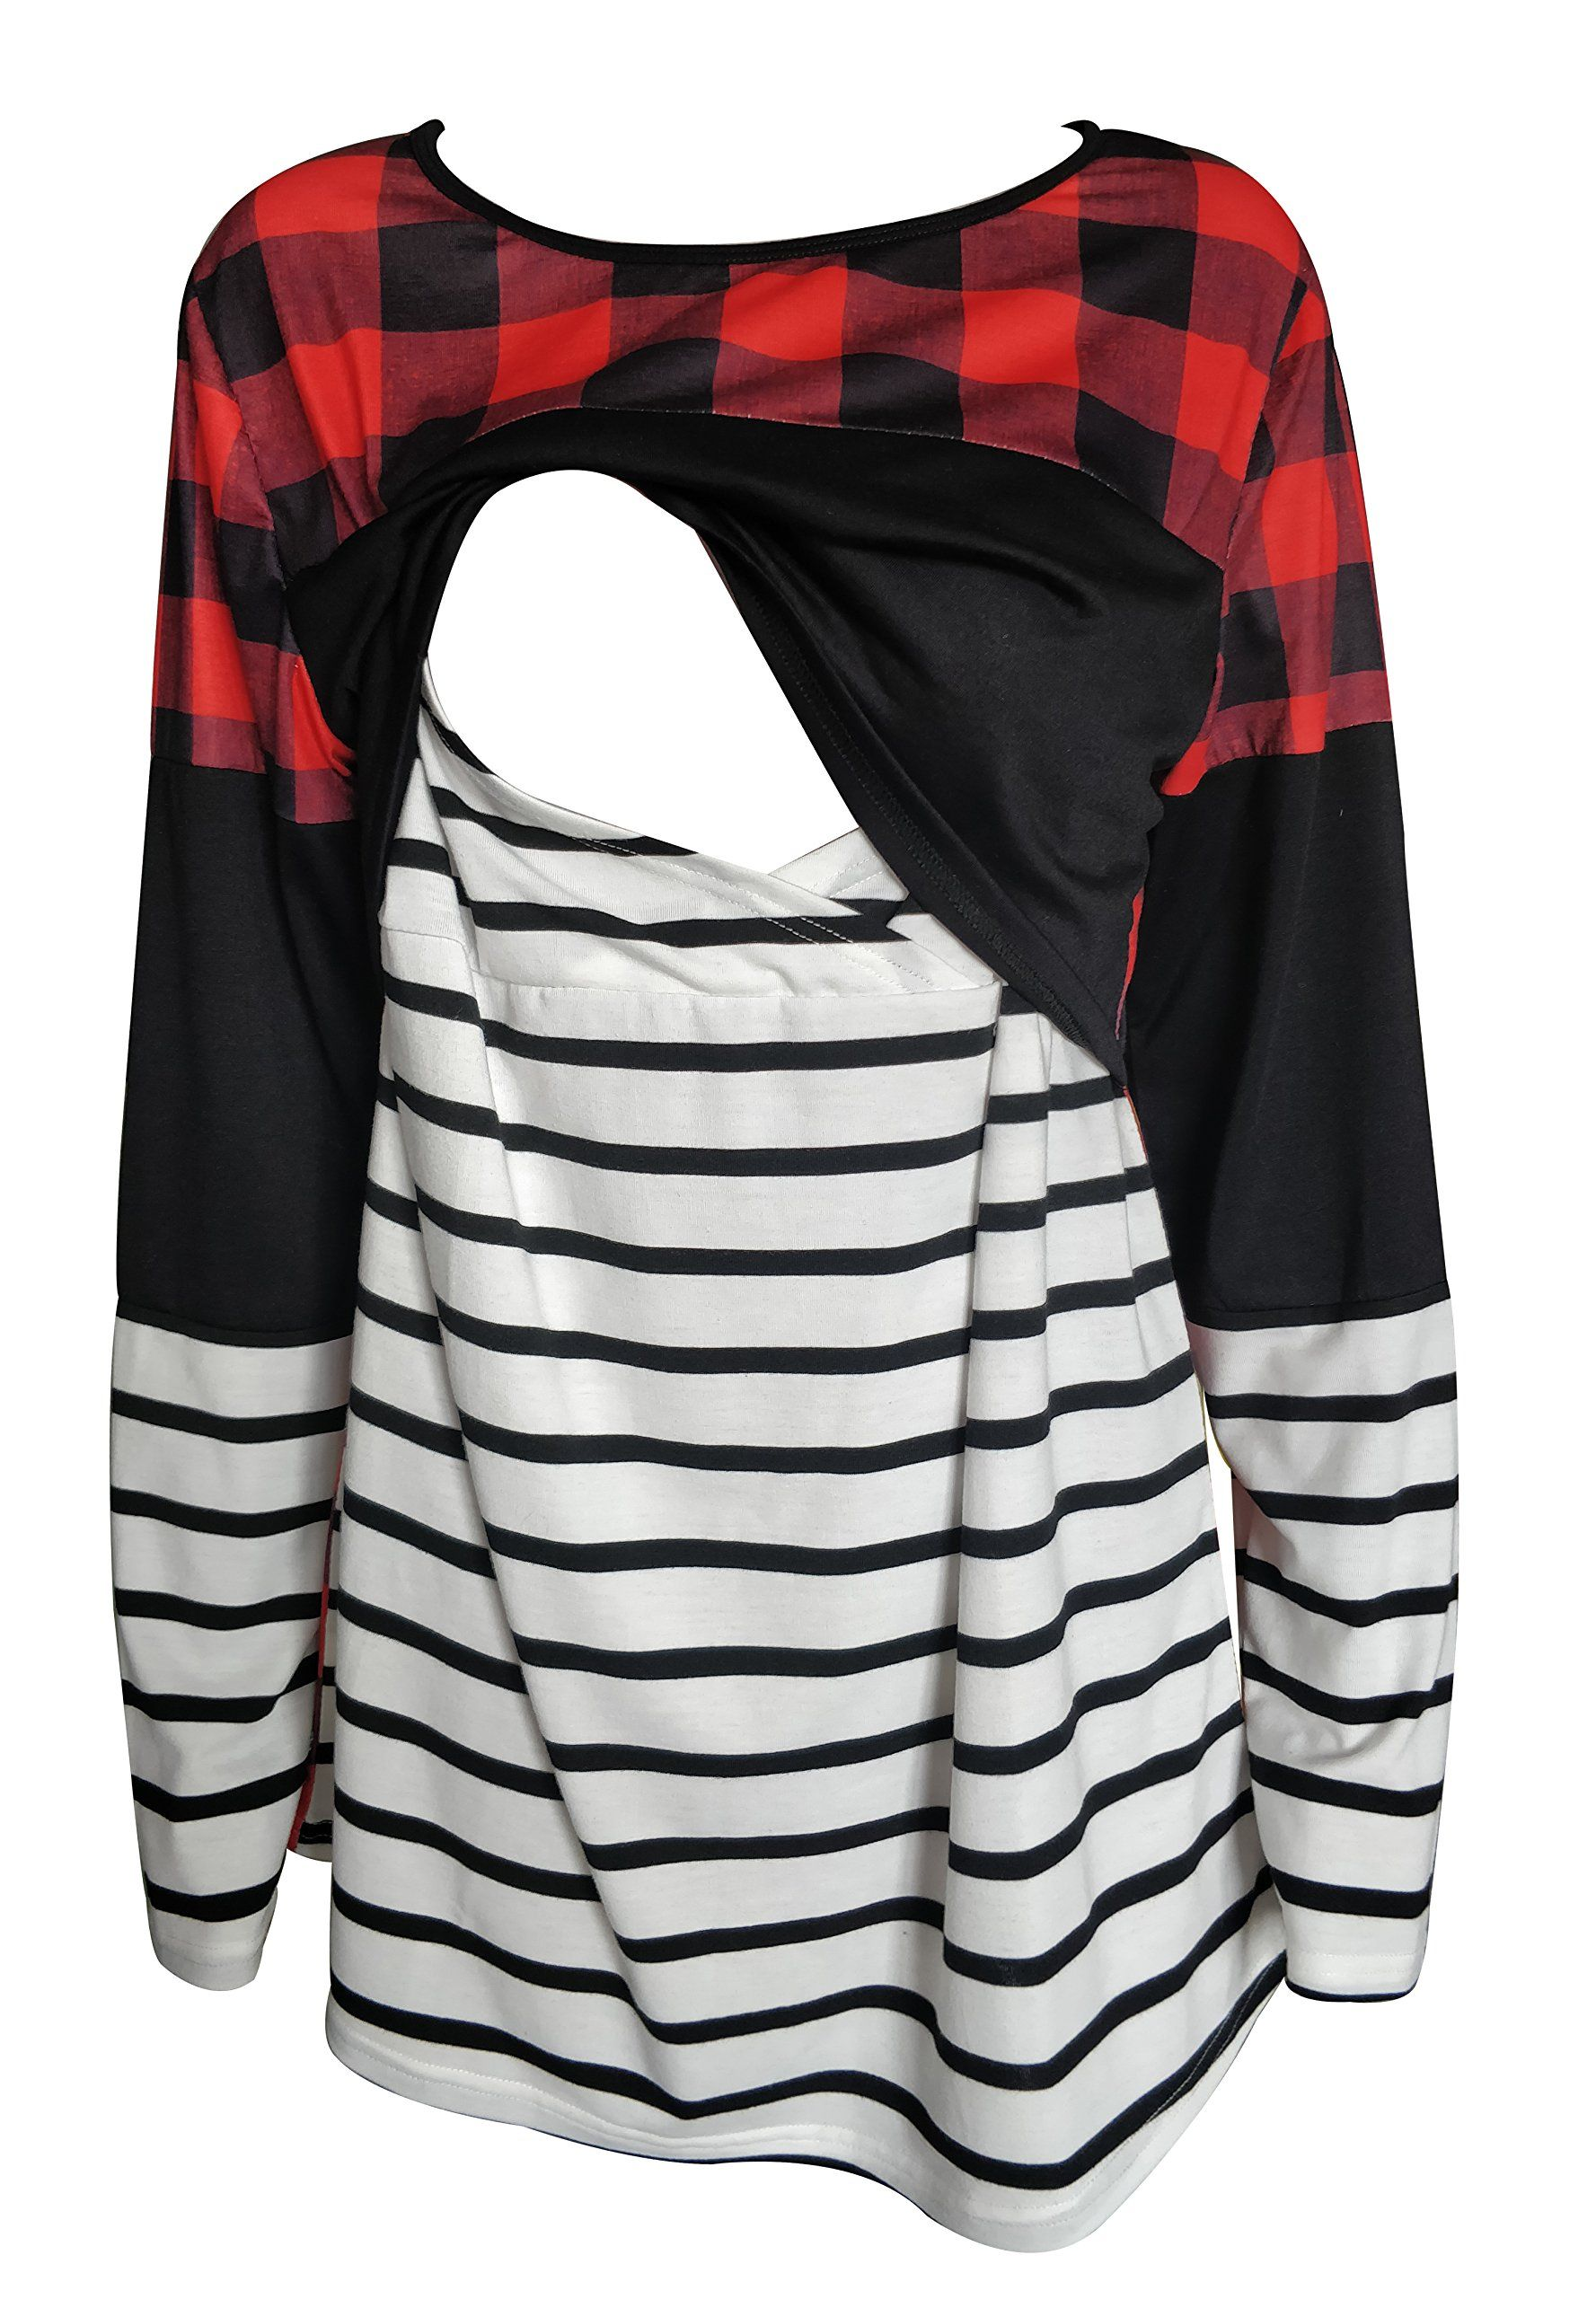 4e00ed43fb476 Maternity Fashion - Breastfeeding Shirt Striped Patchwork Long Sleeve  Maternity Breastfeeding and Nursing Tops M Red *** Information could be  discovered by ...